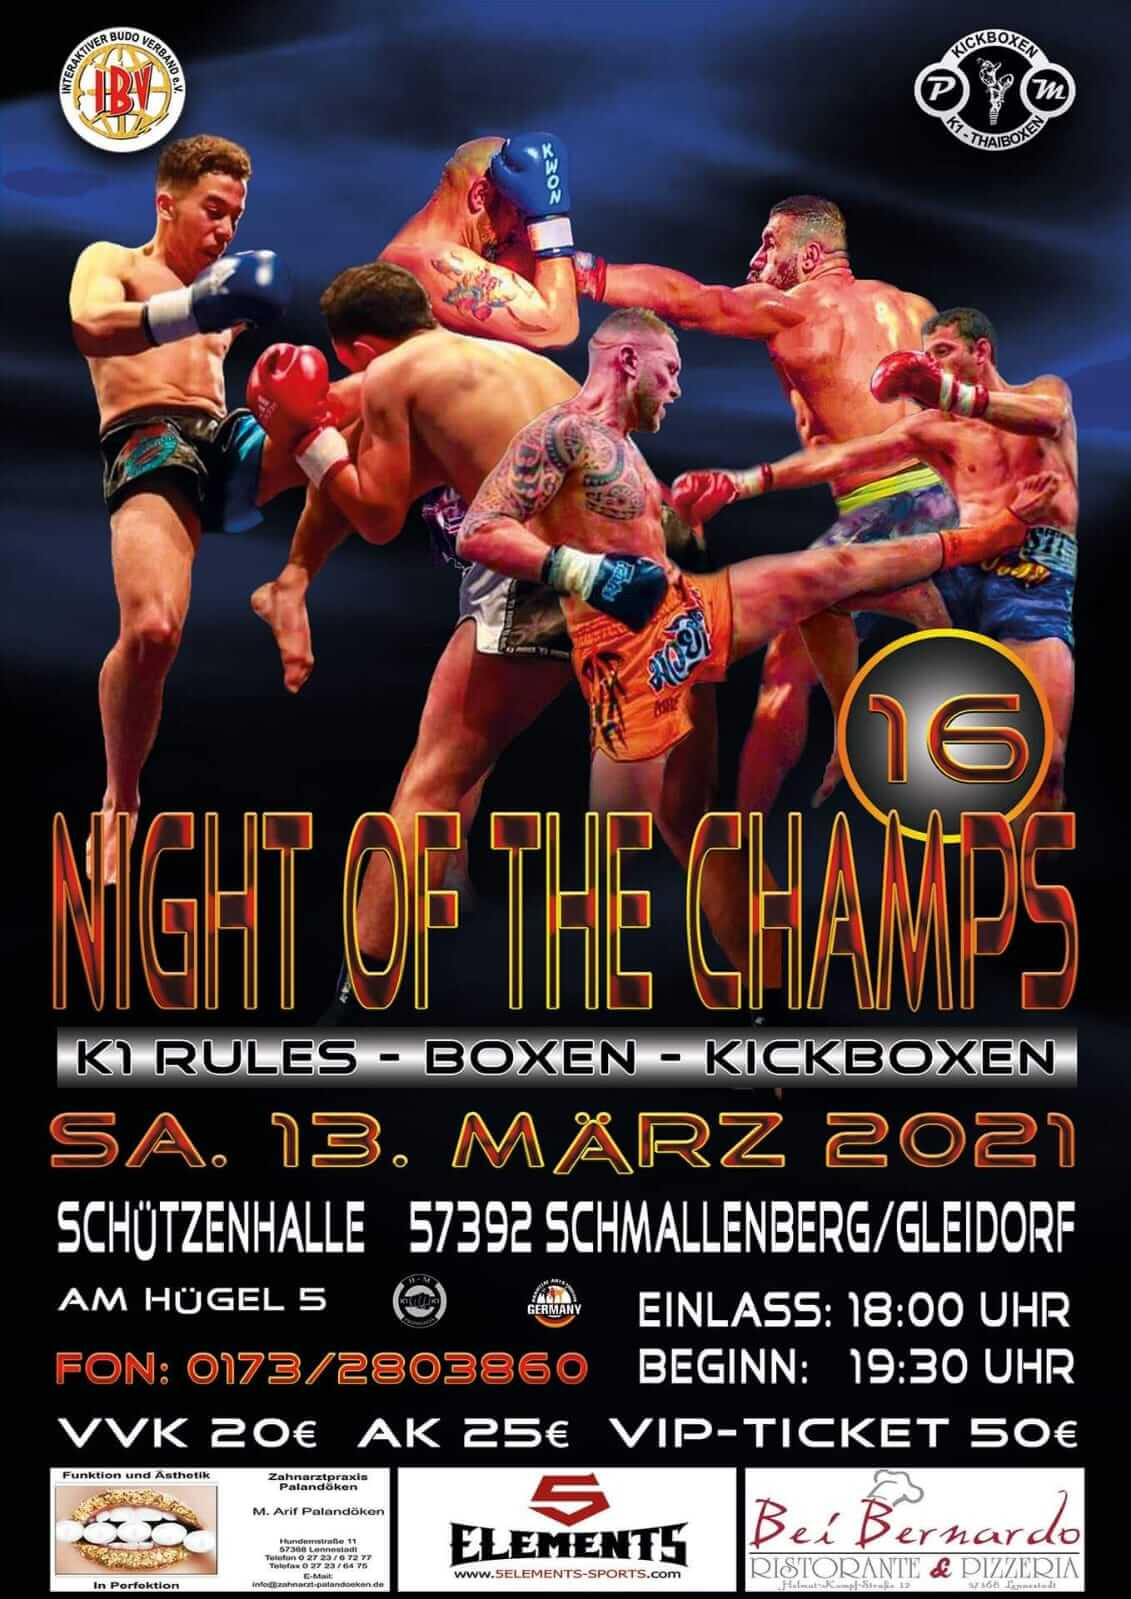 Night of the Champs Samstag 13 März 2021